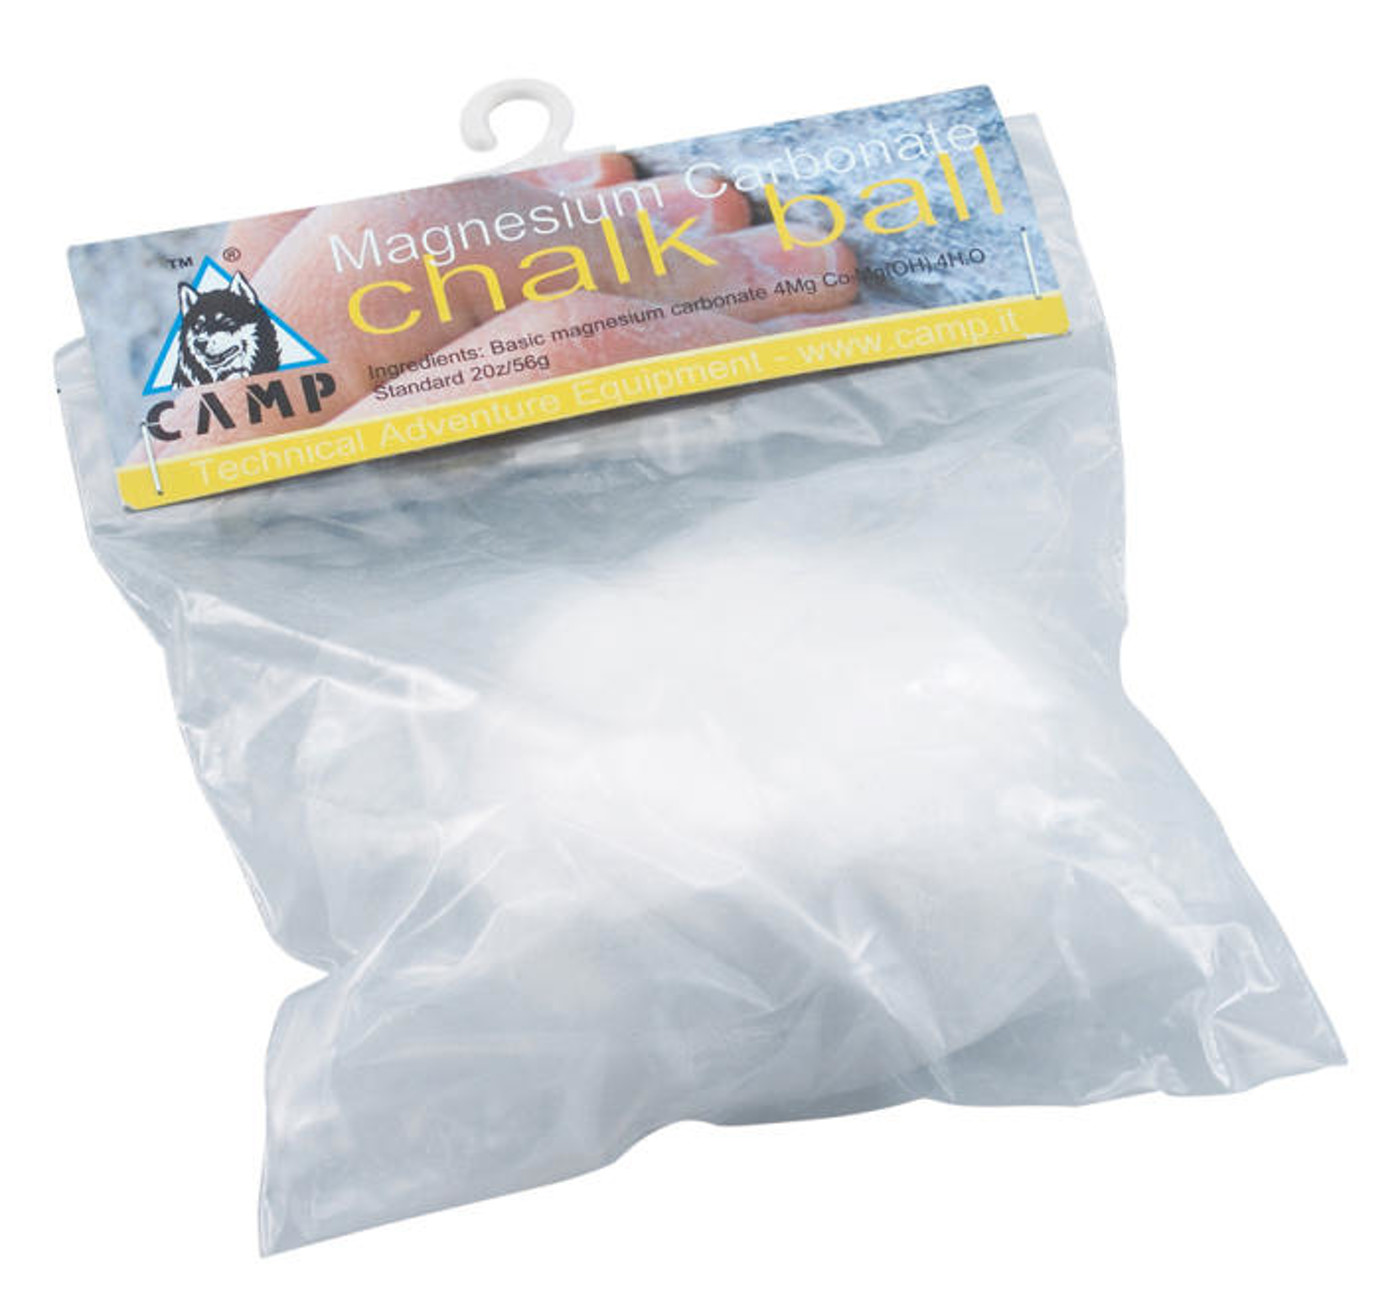 CAMP Magnesium CHALK BALL